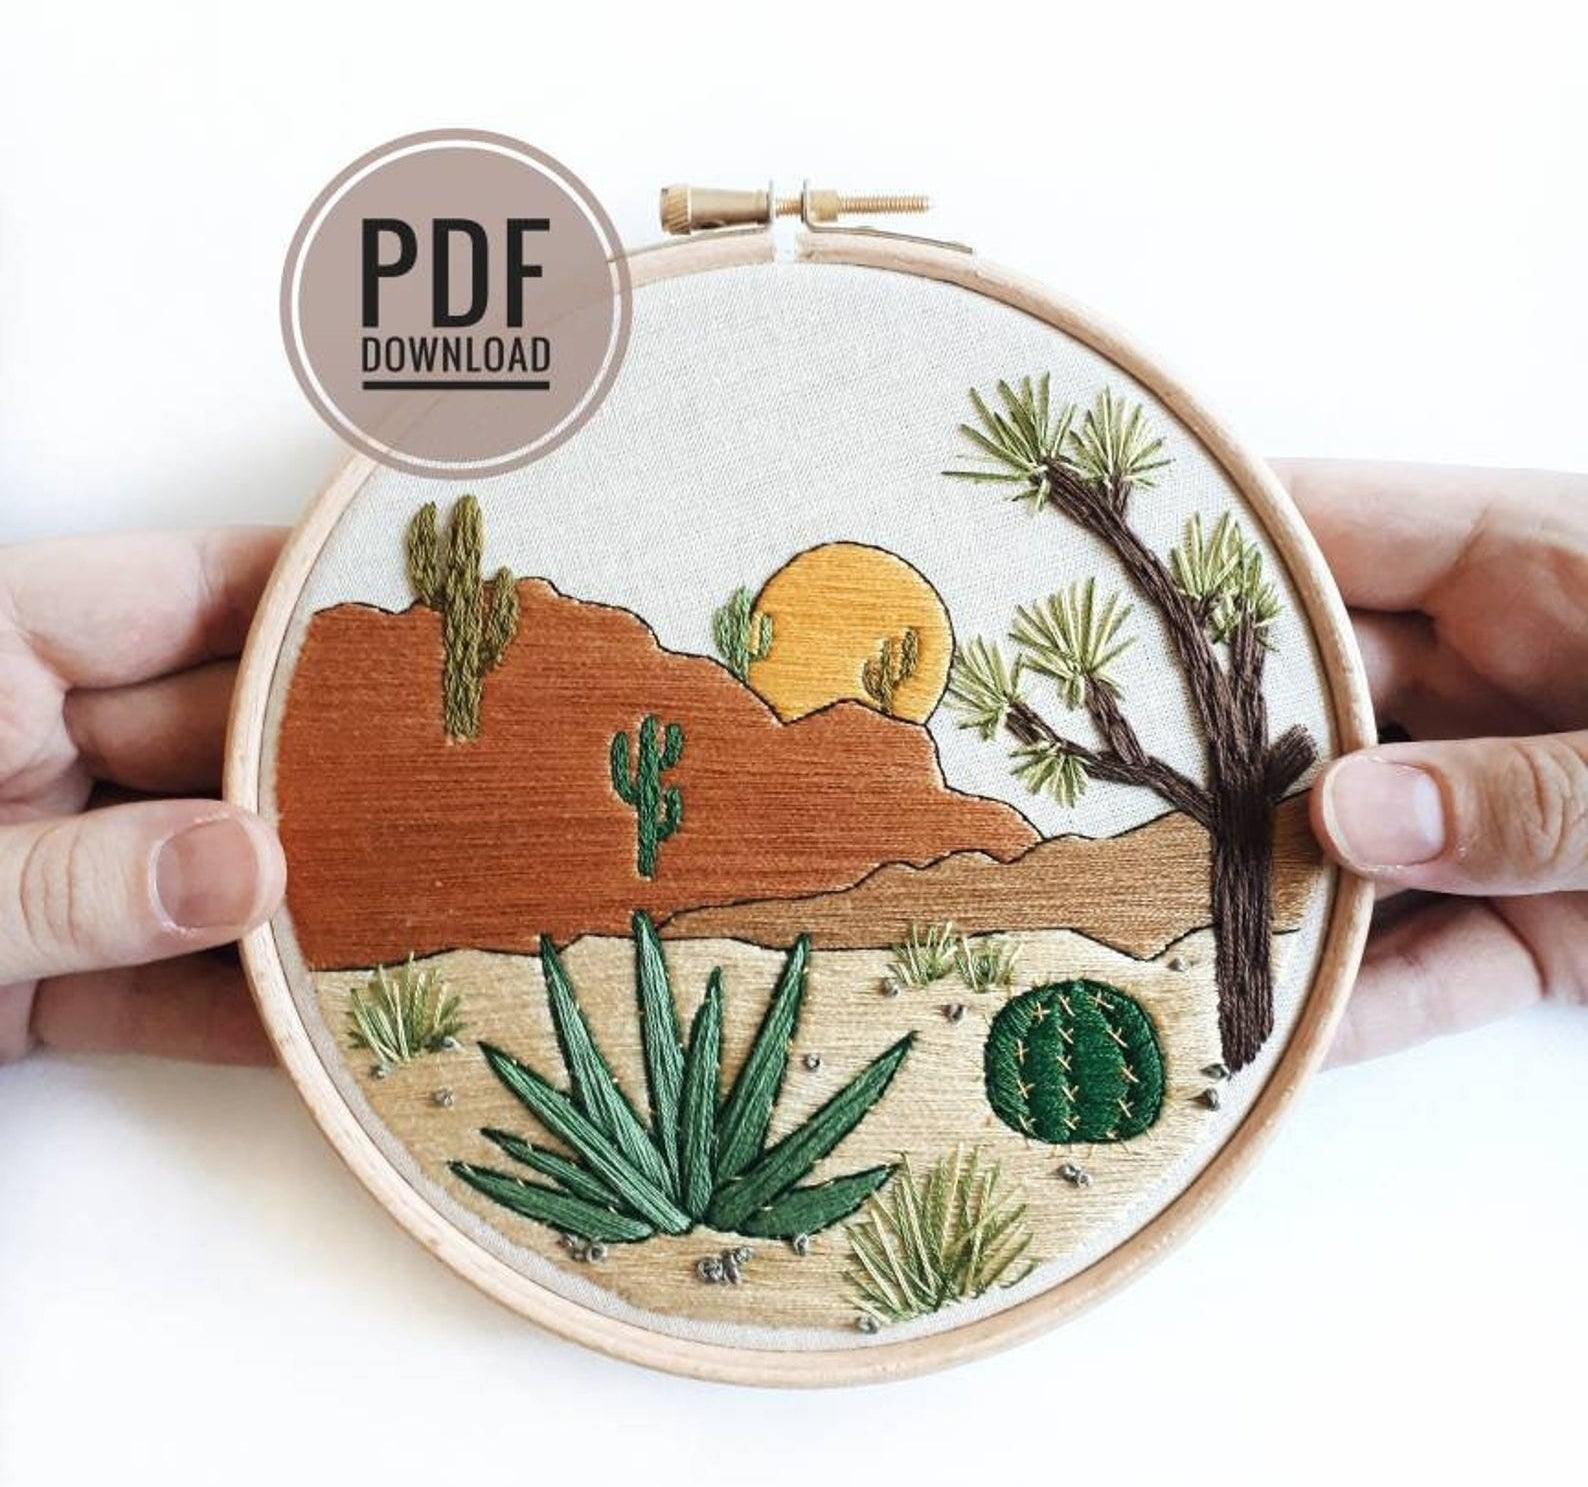 embroidered pattern of southwest desert